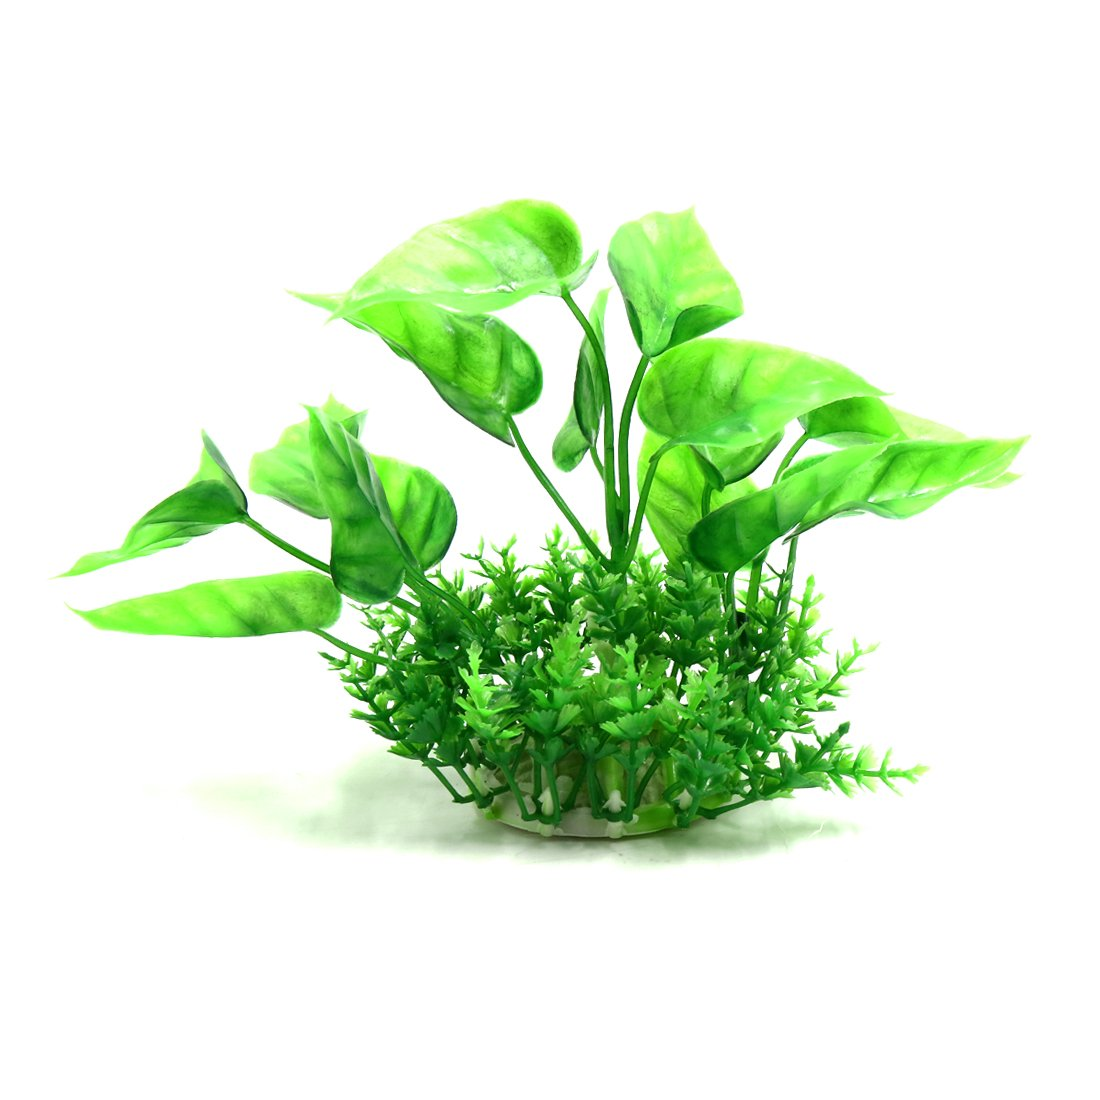 Type B uxcell® Green Plastic Plant Aqua Landscape Decoration Aquatic Habitat Decor Aquarium Accessory